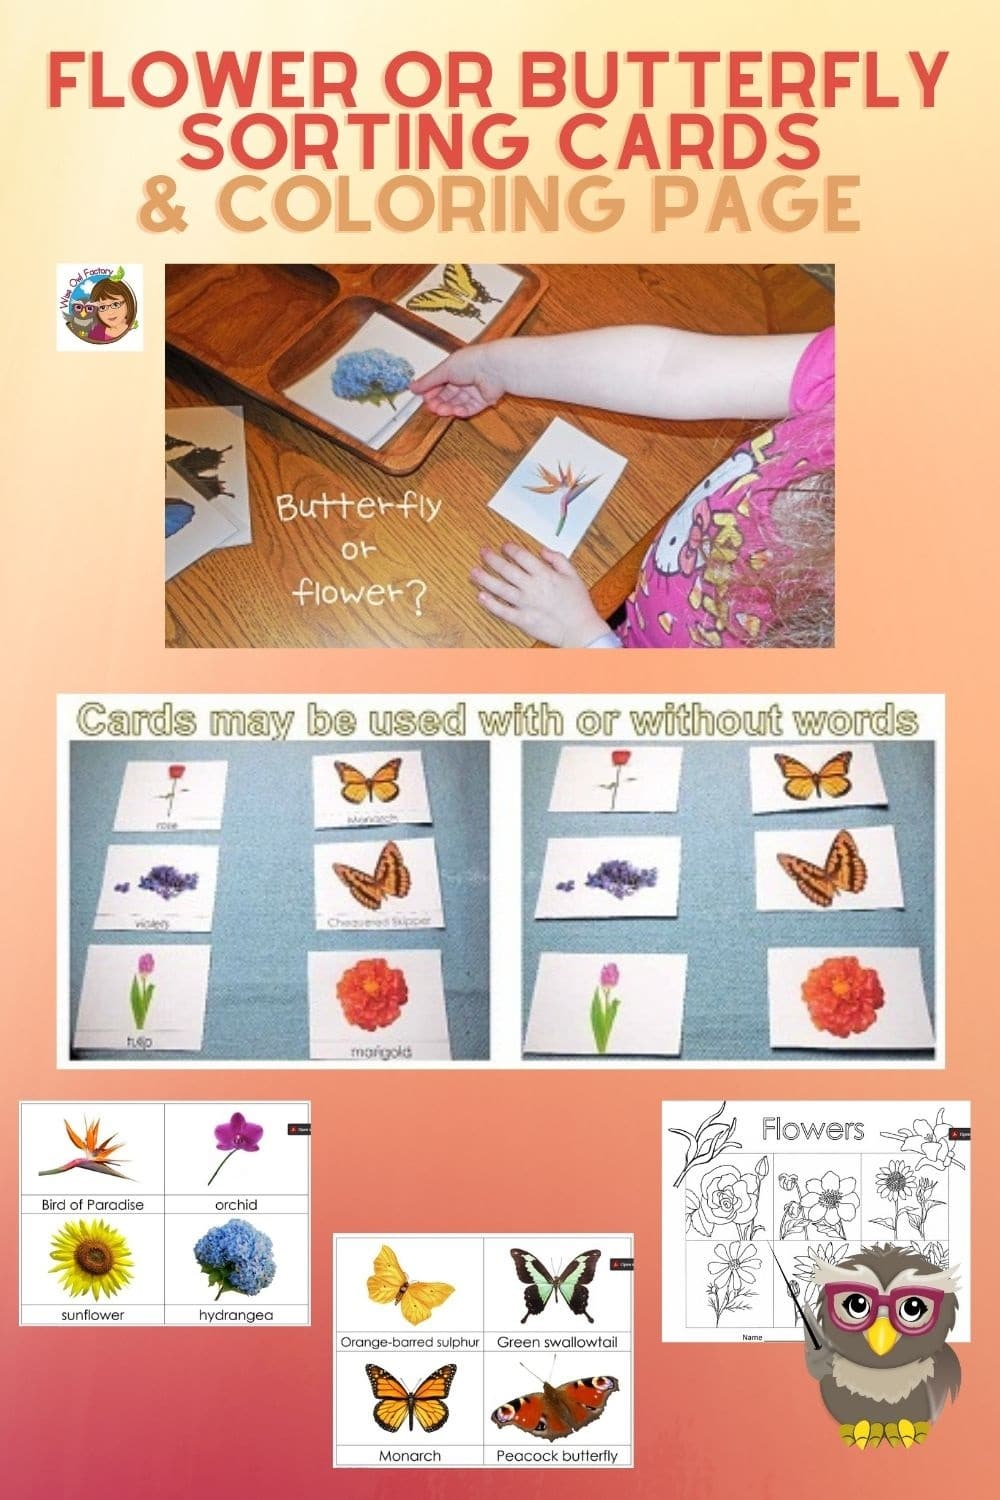 Flower or Butterfly Sorting and Coloring Free PDF Engage a young learner who might mix up flowers with butterflies. Both are so beautiful!